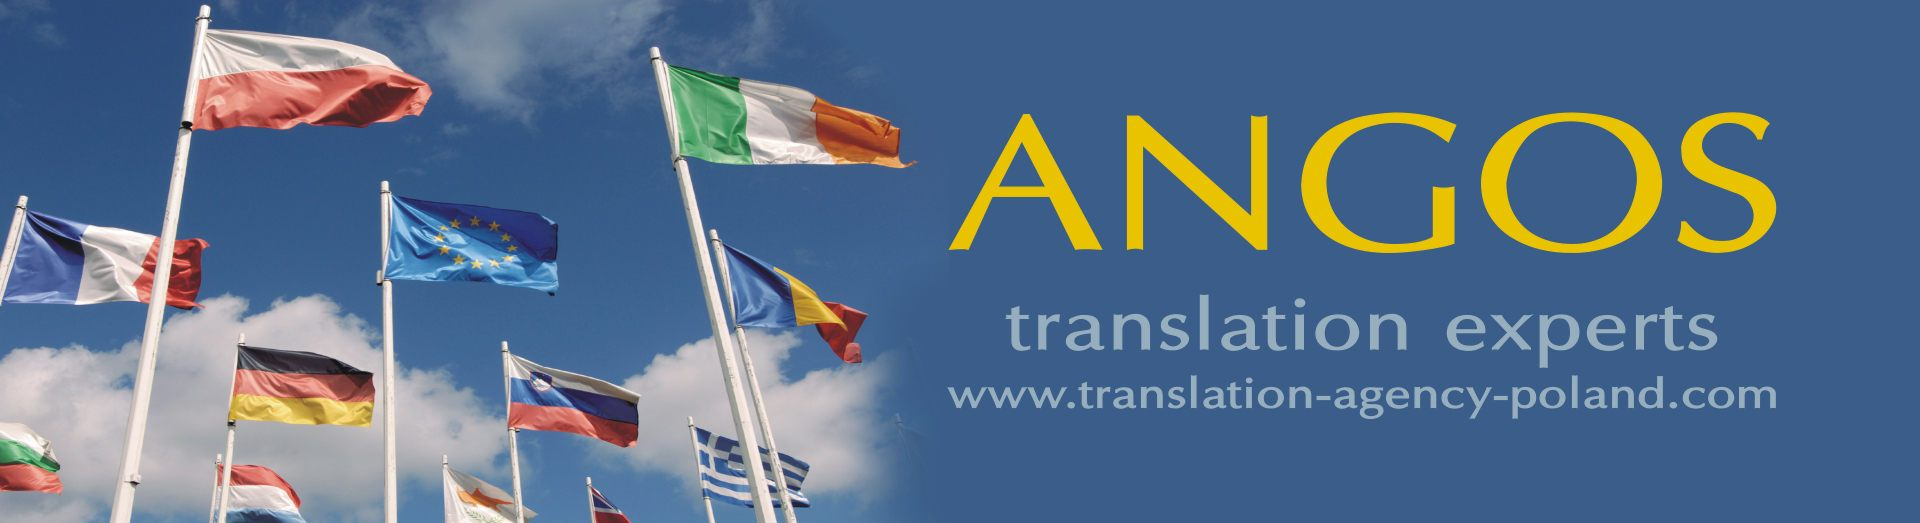 ANGOS_Translation_Agency_Poland_Contact_Us_a